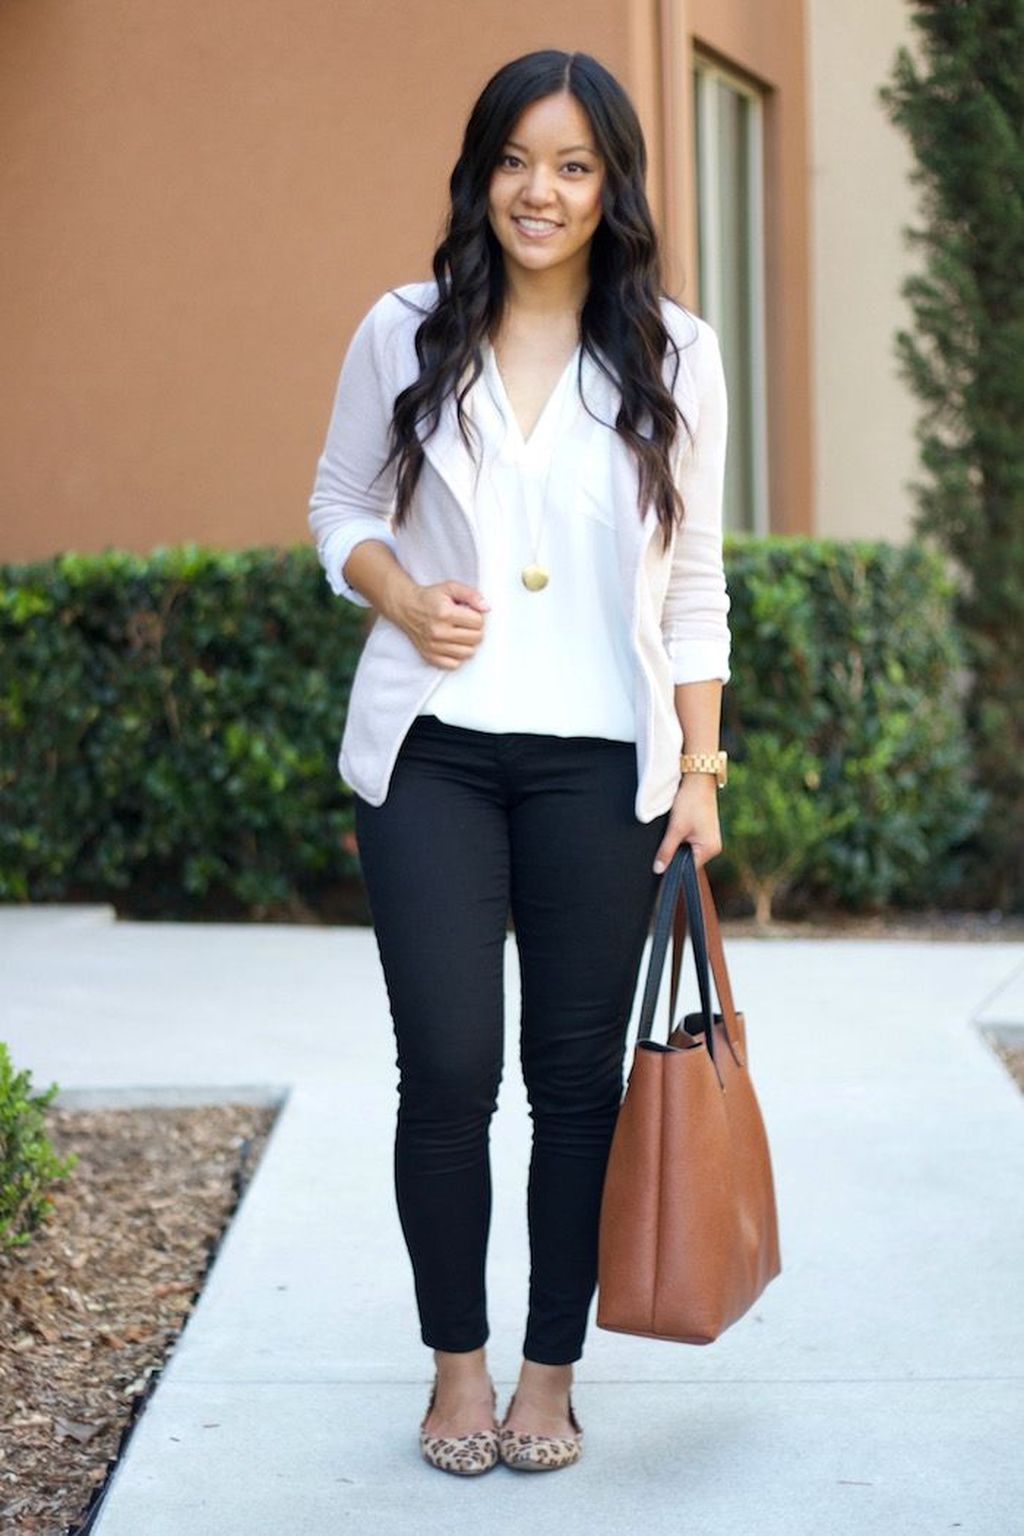 Black Casual white clothing combinations for women